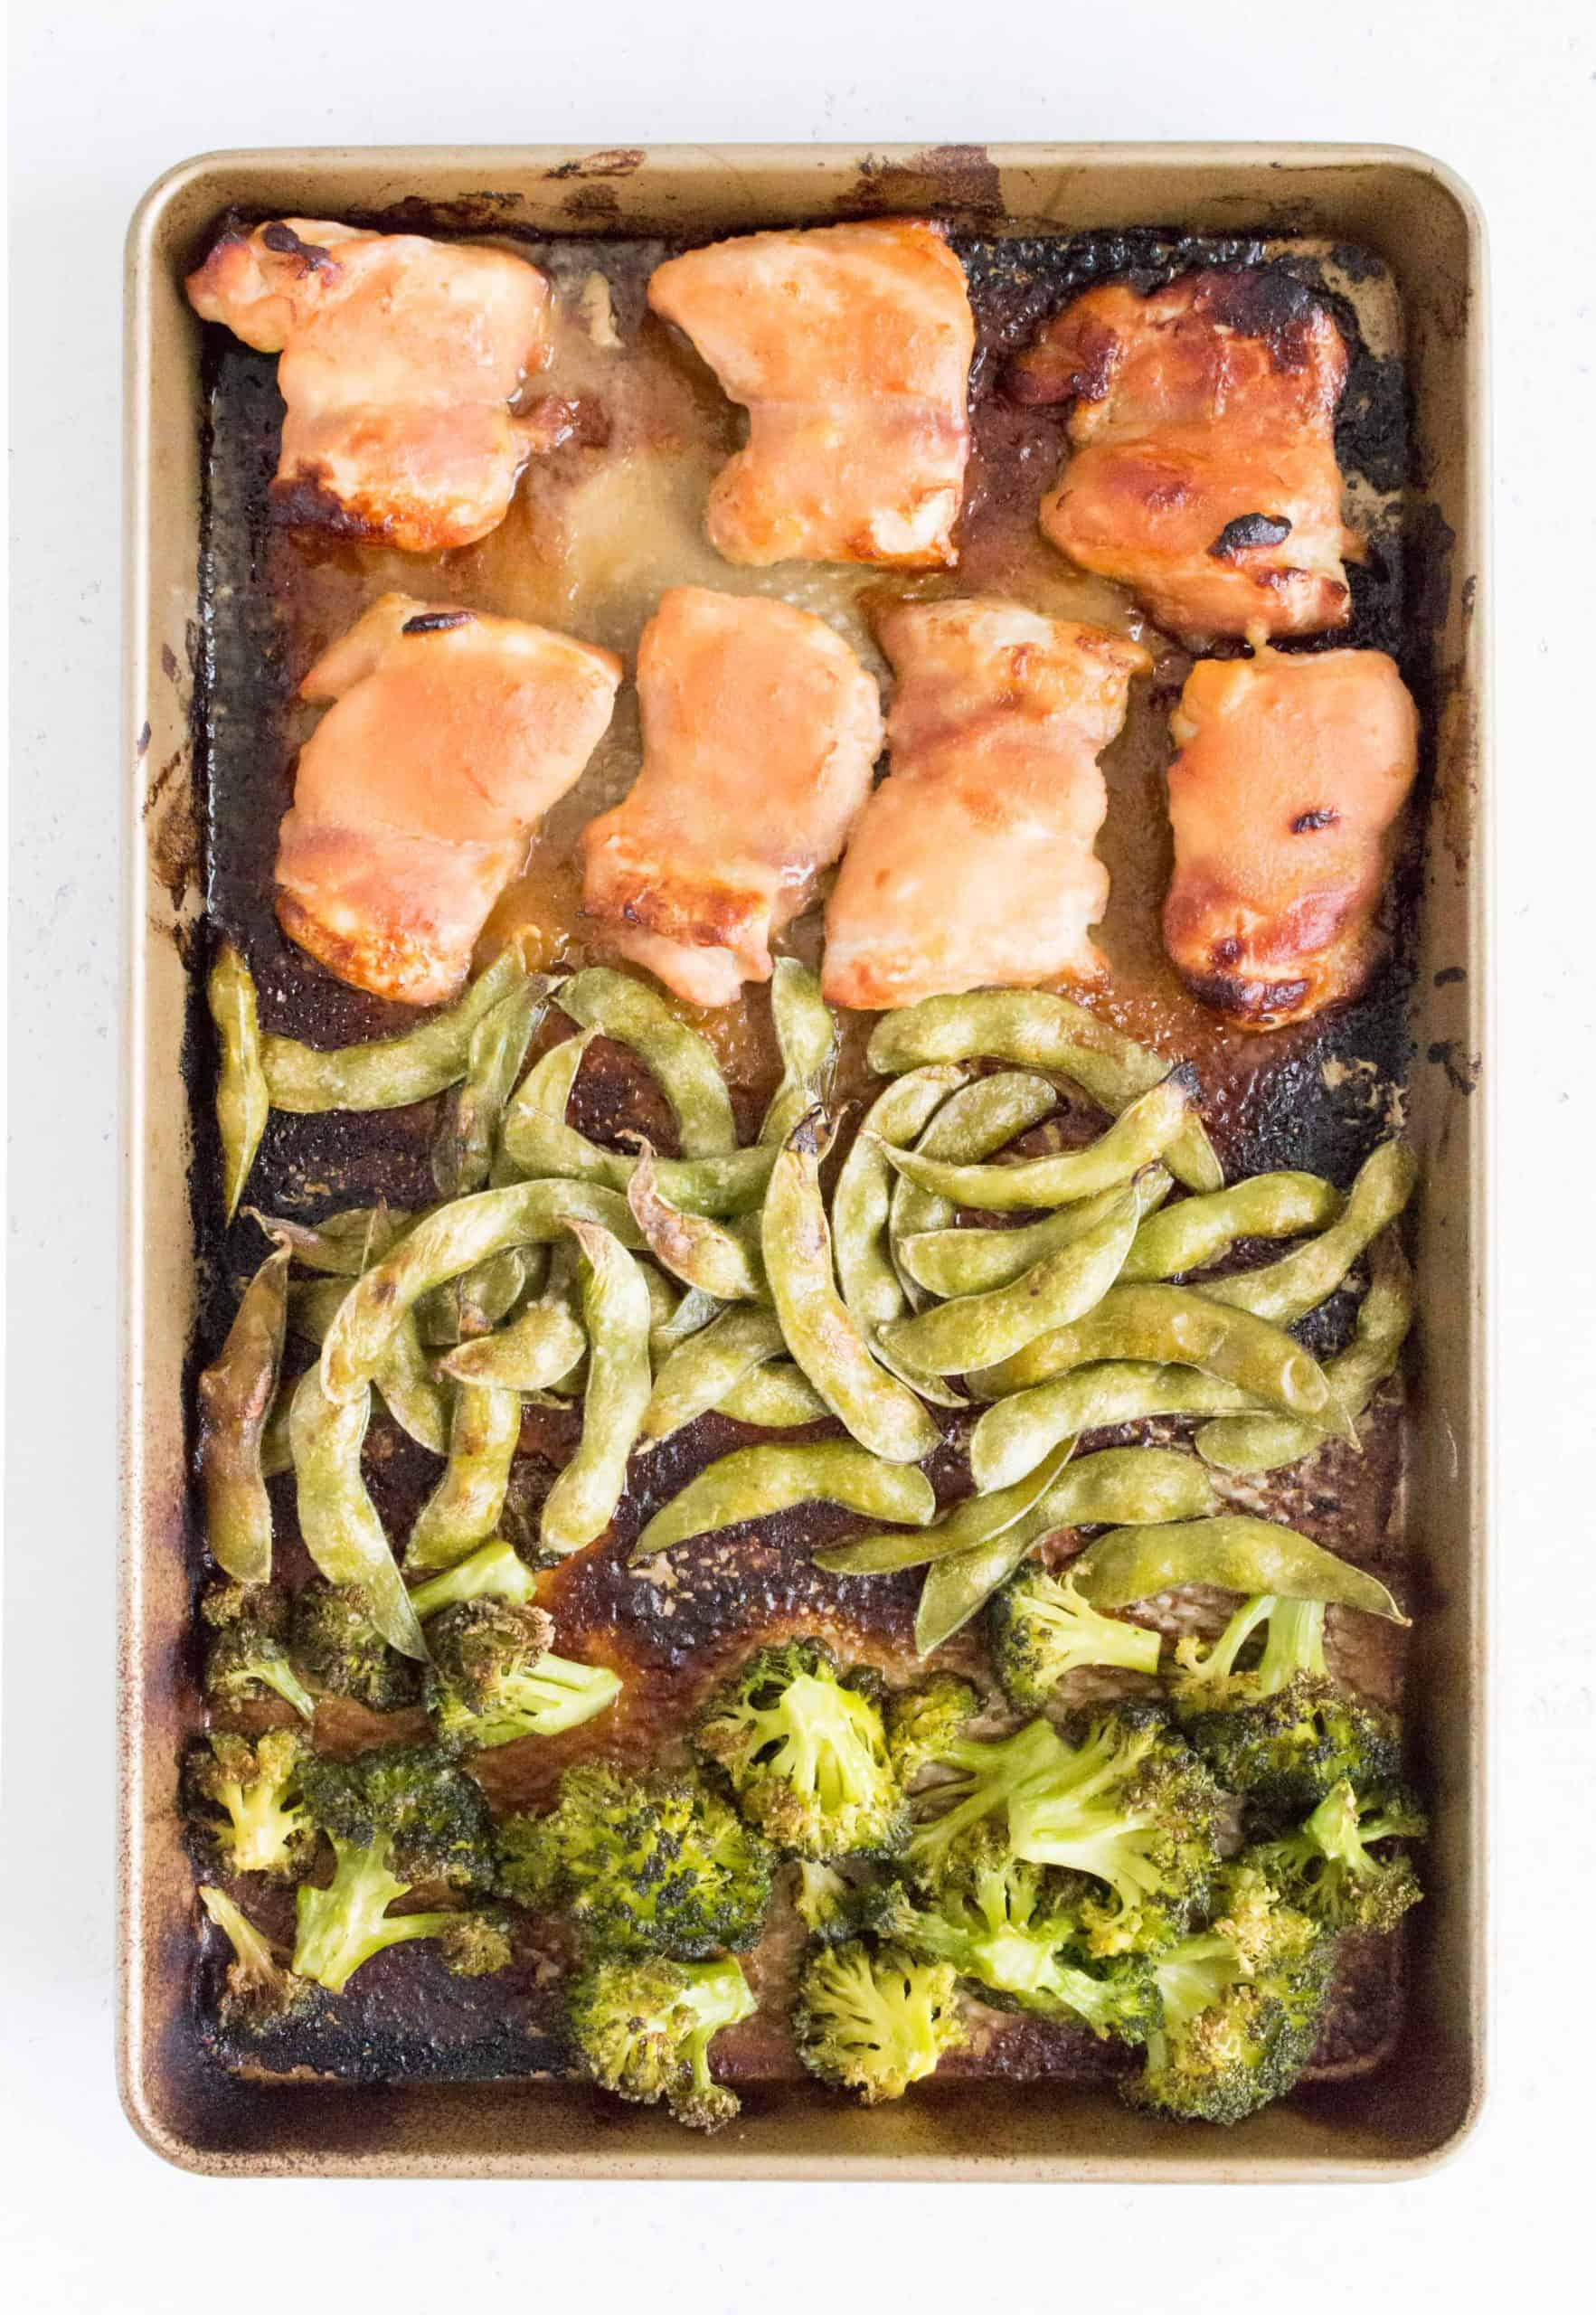 roasted miso chicken thighs with roasted edamame and broccoli in a sheet pan